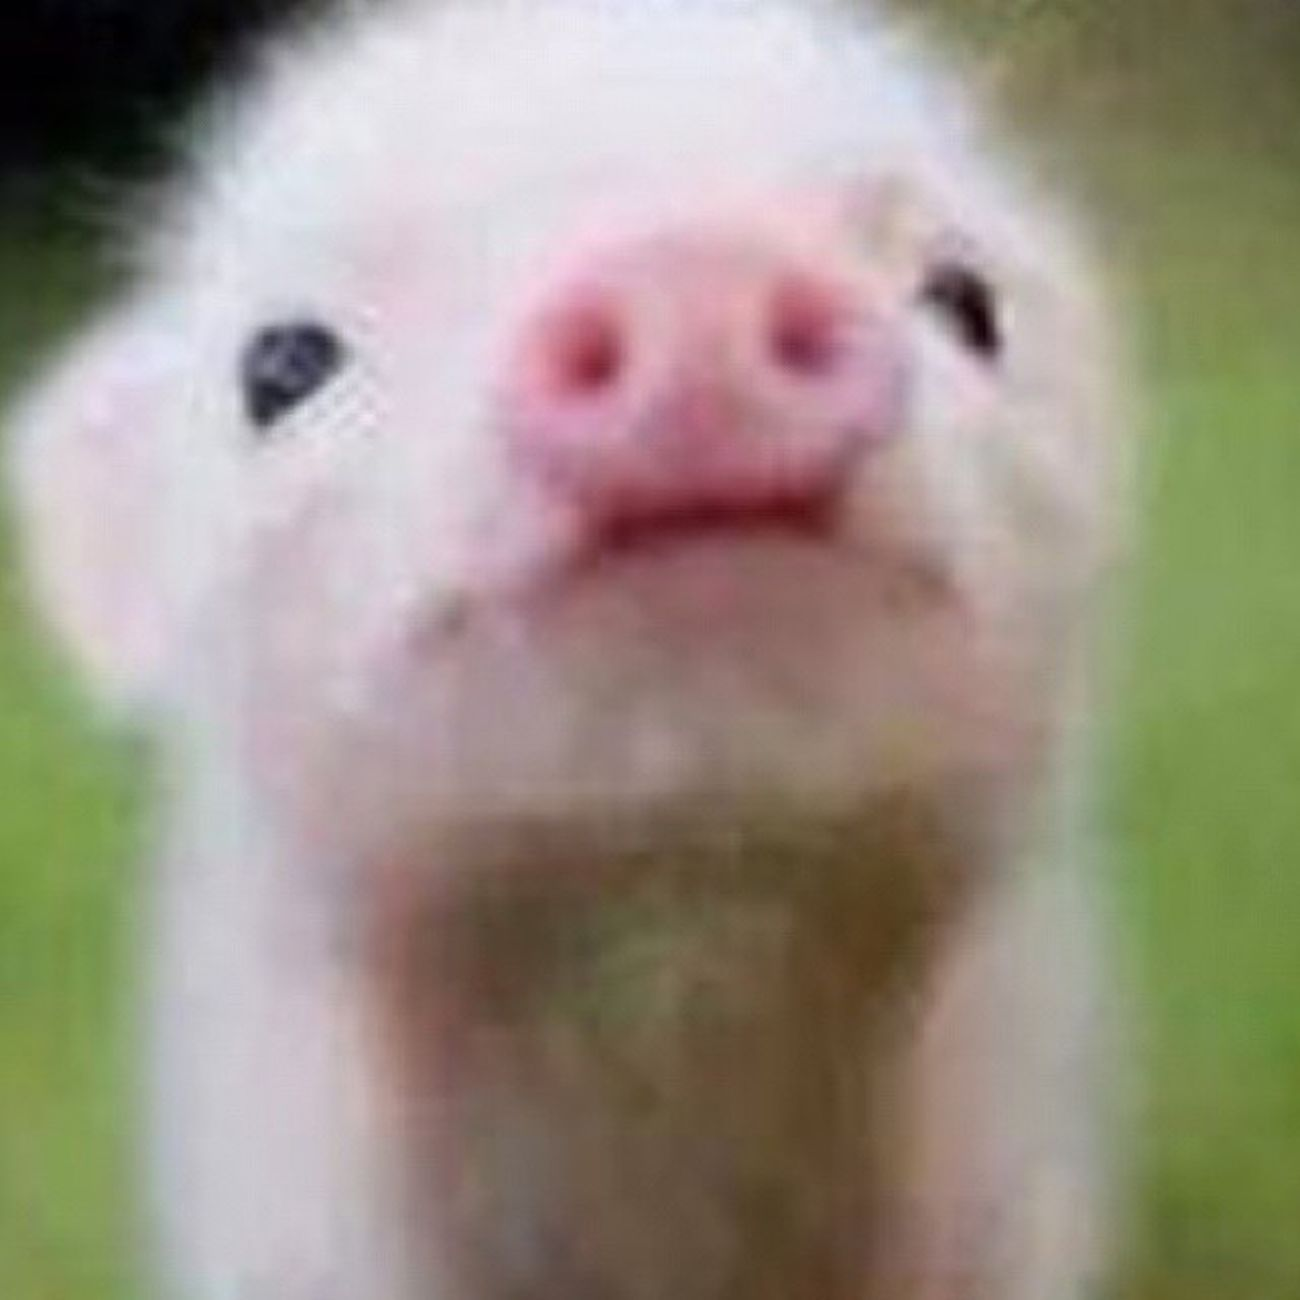 Cute BabyPig Ermerger